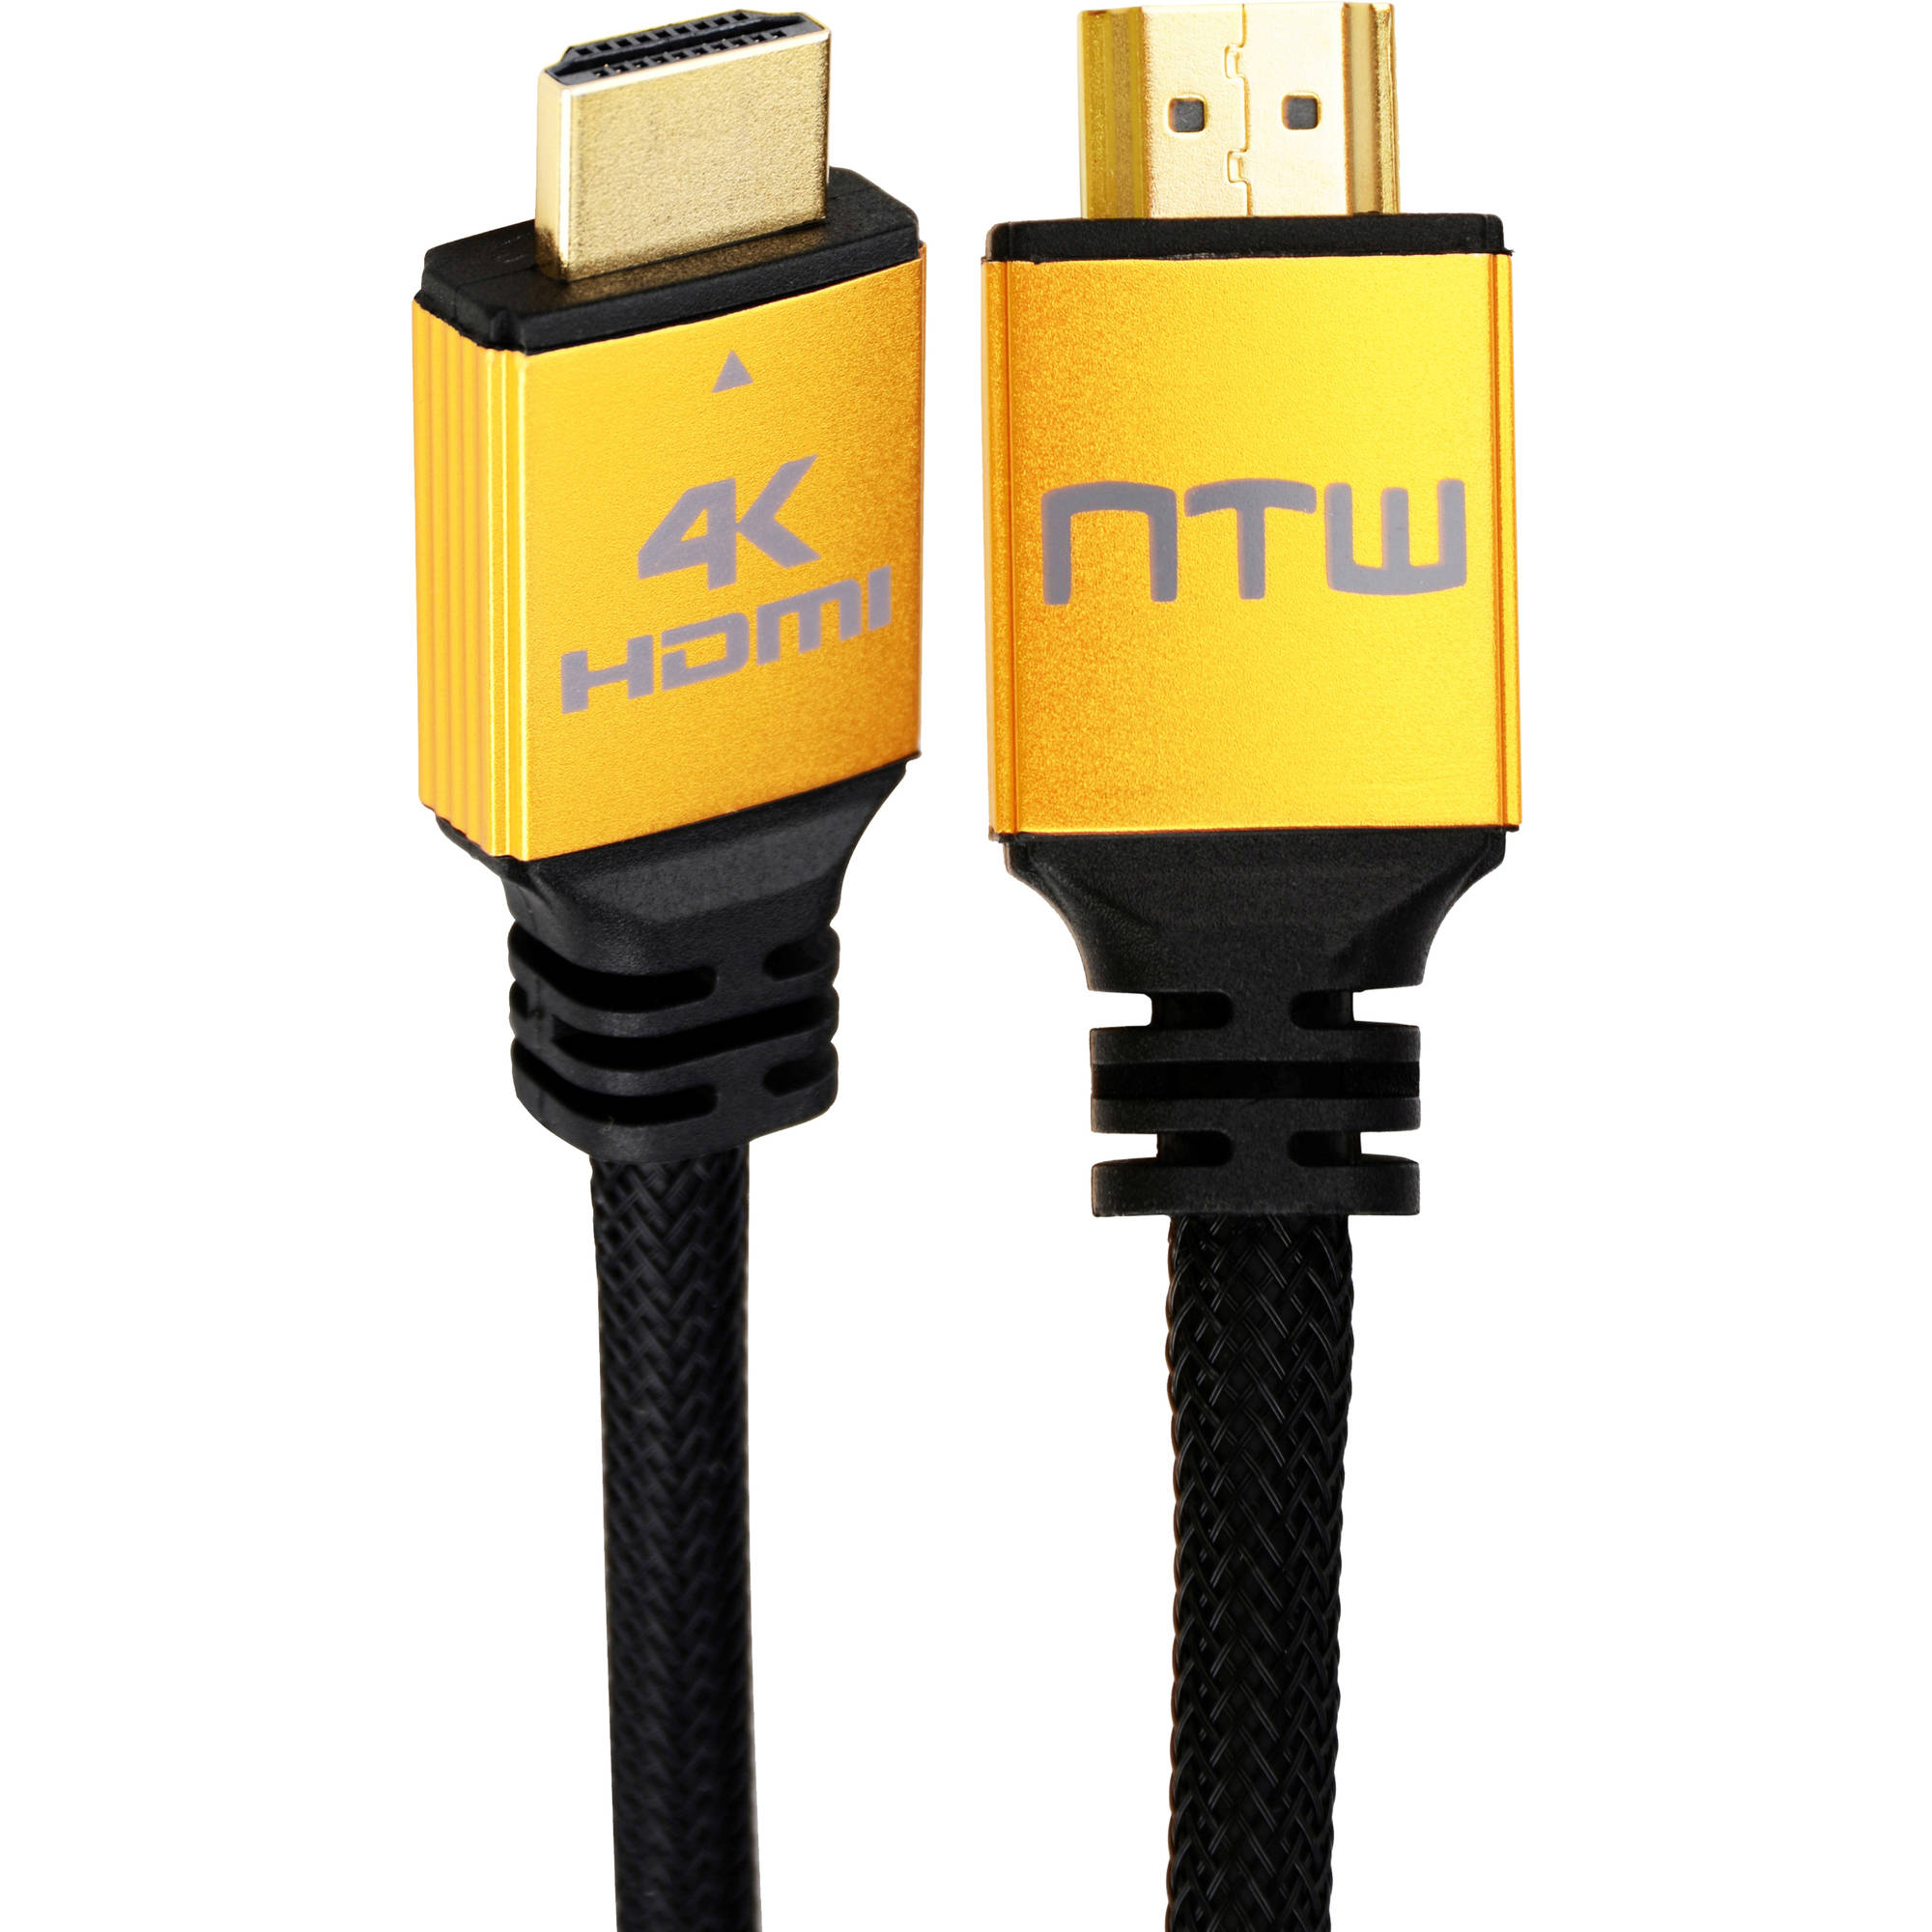 Ultra HD Pure PRO 4K High-Speed HDMI Cable with Ethernet